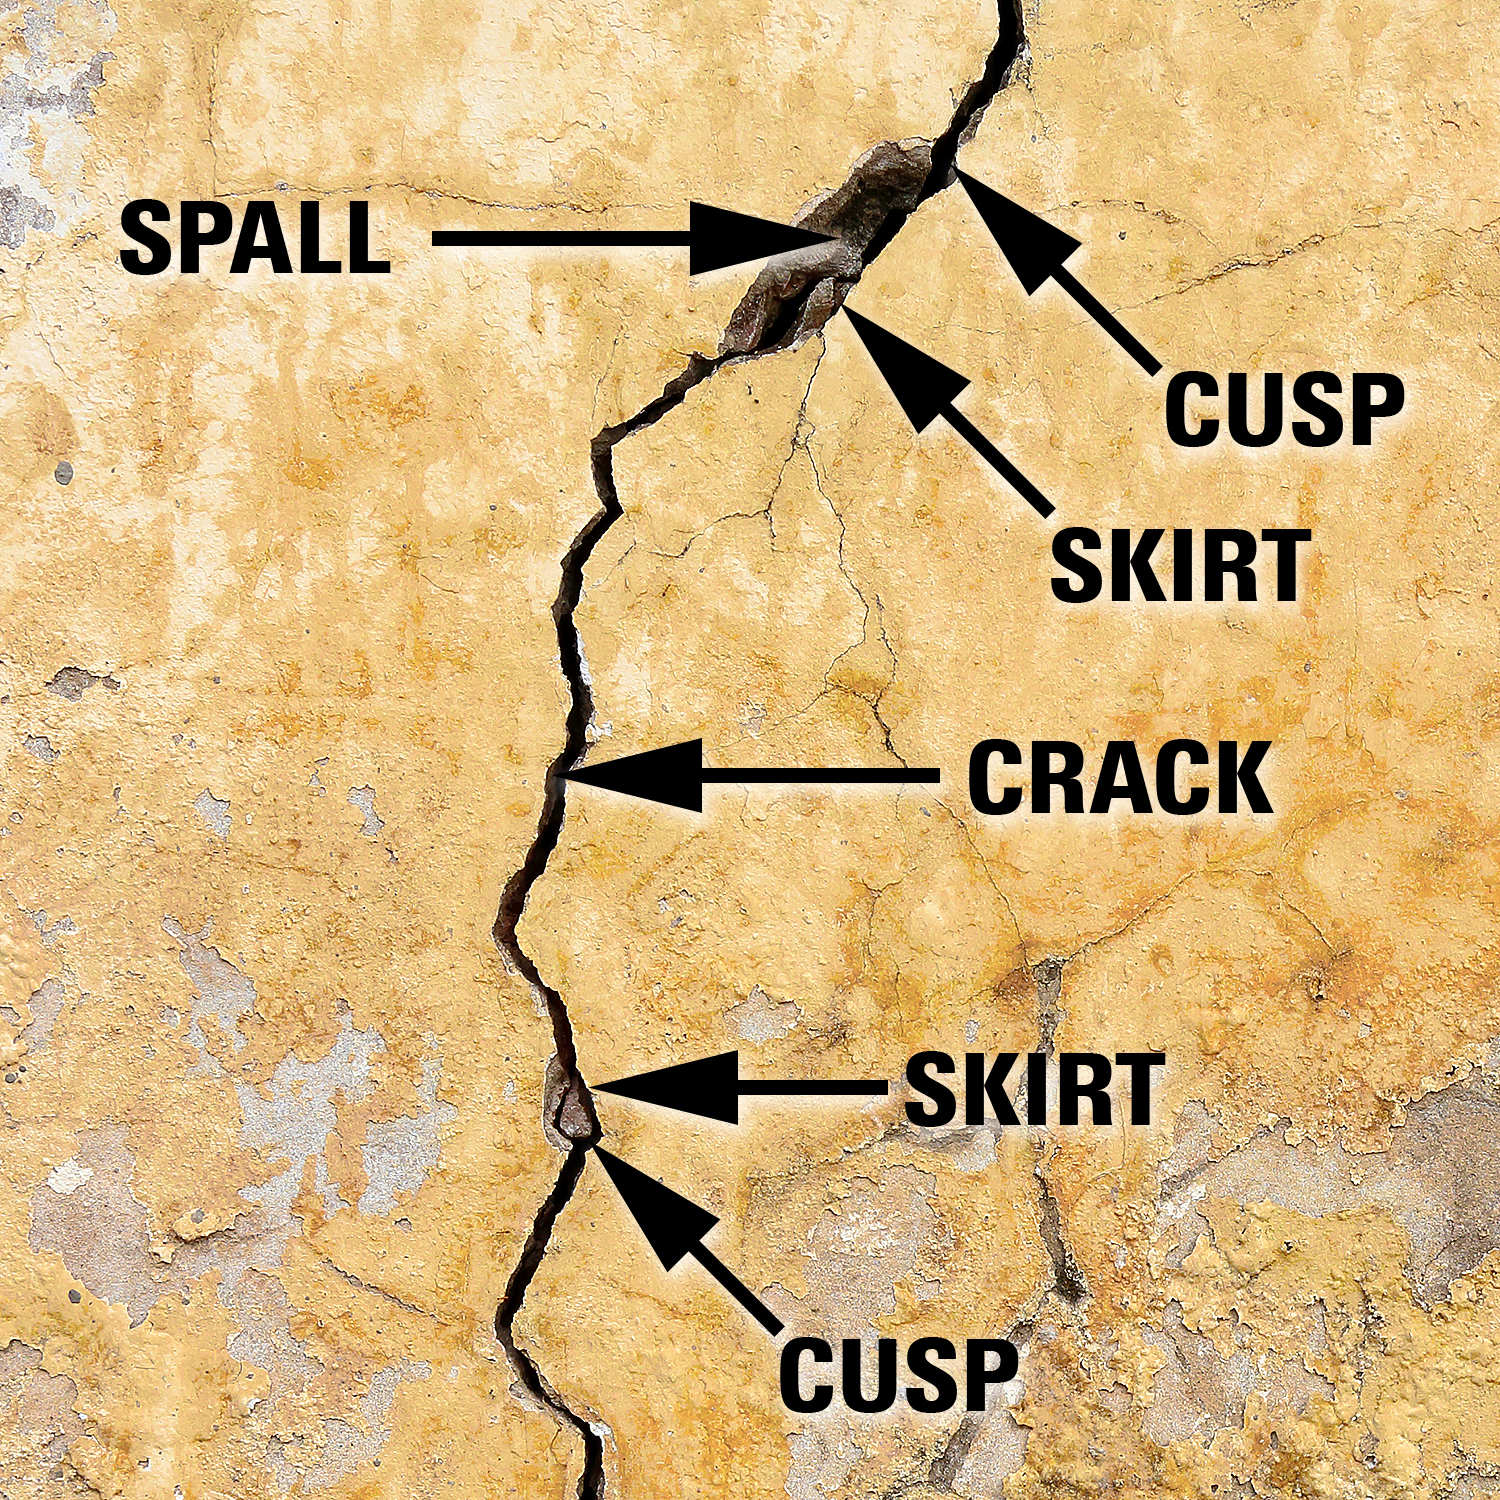 Figure 1. ANATOMY OF A CRACK. This photo illustrates a vertical crack approximately 1-3 mm wide, with larger areas of spalling. Epoxy injection can help to seal the crack from further erosion while impeding premature corrosion of reinforcing steel.